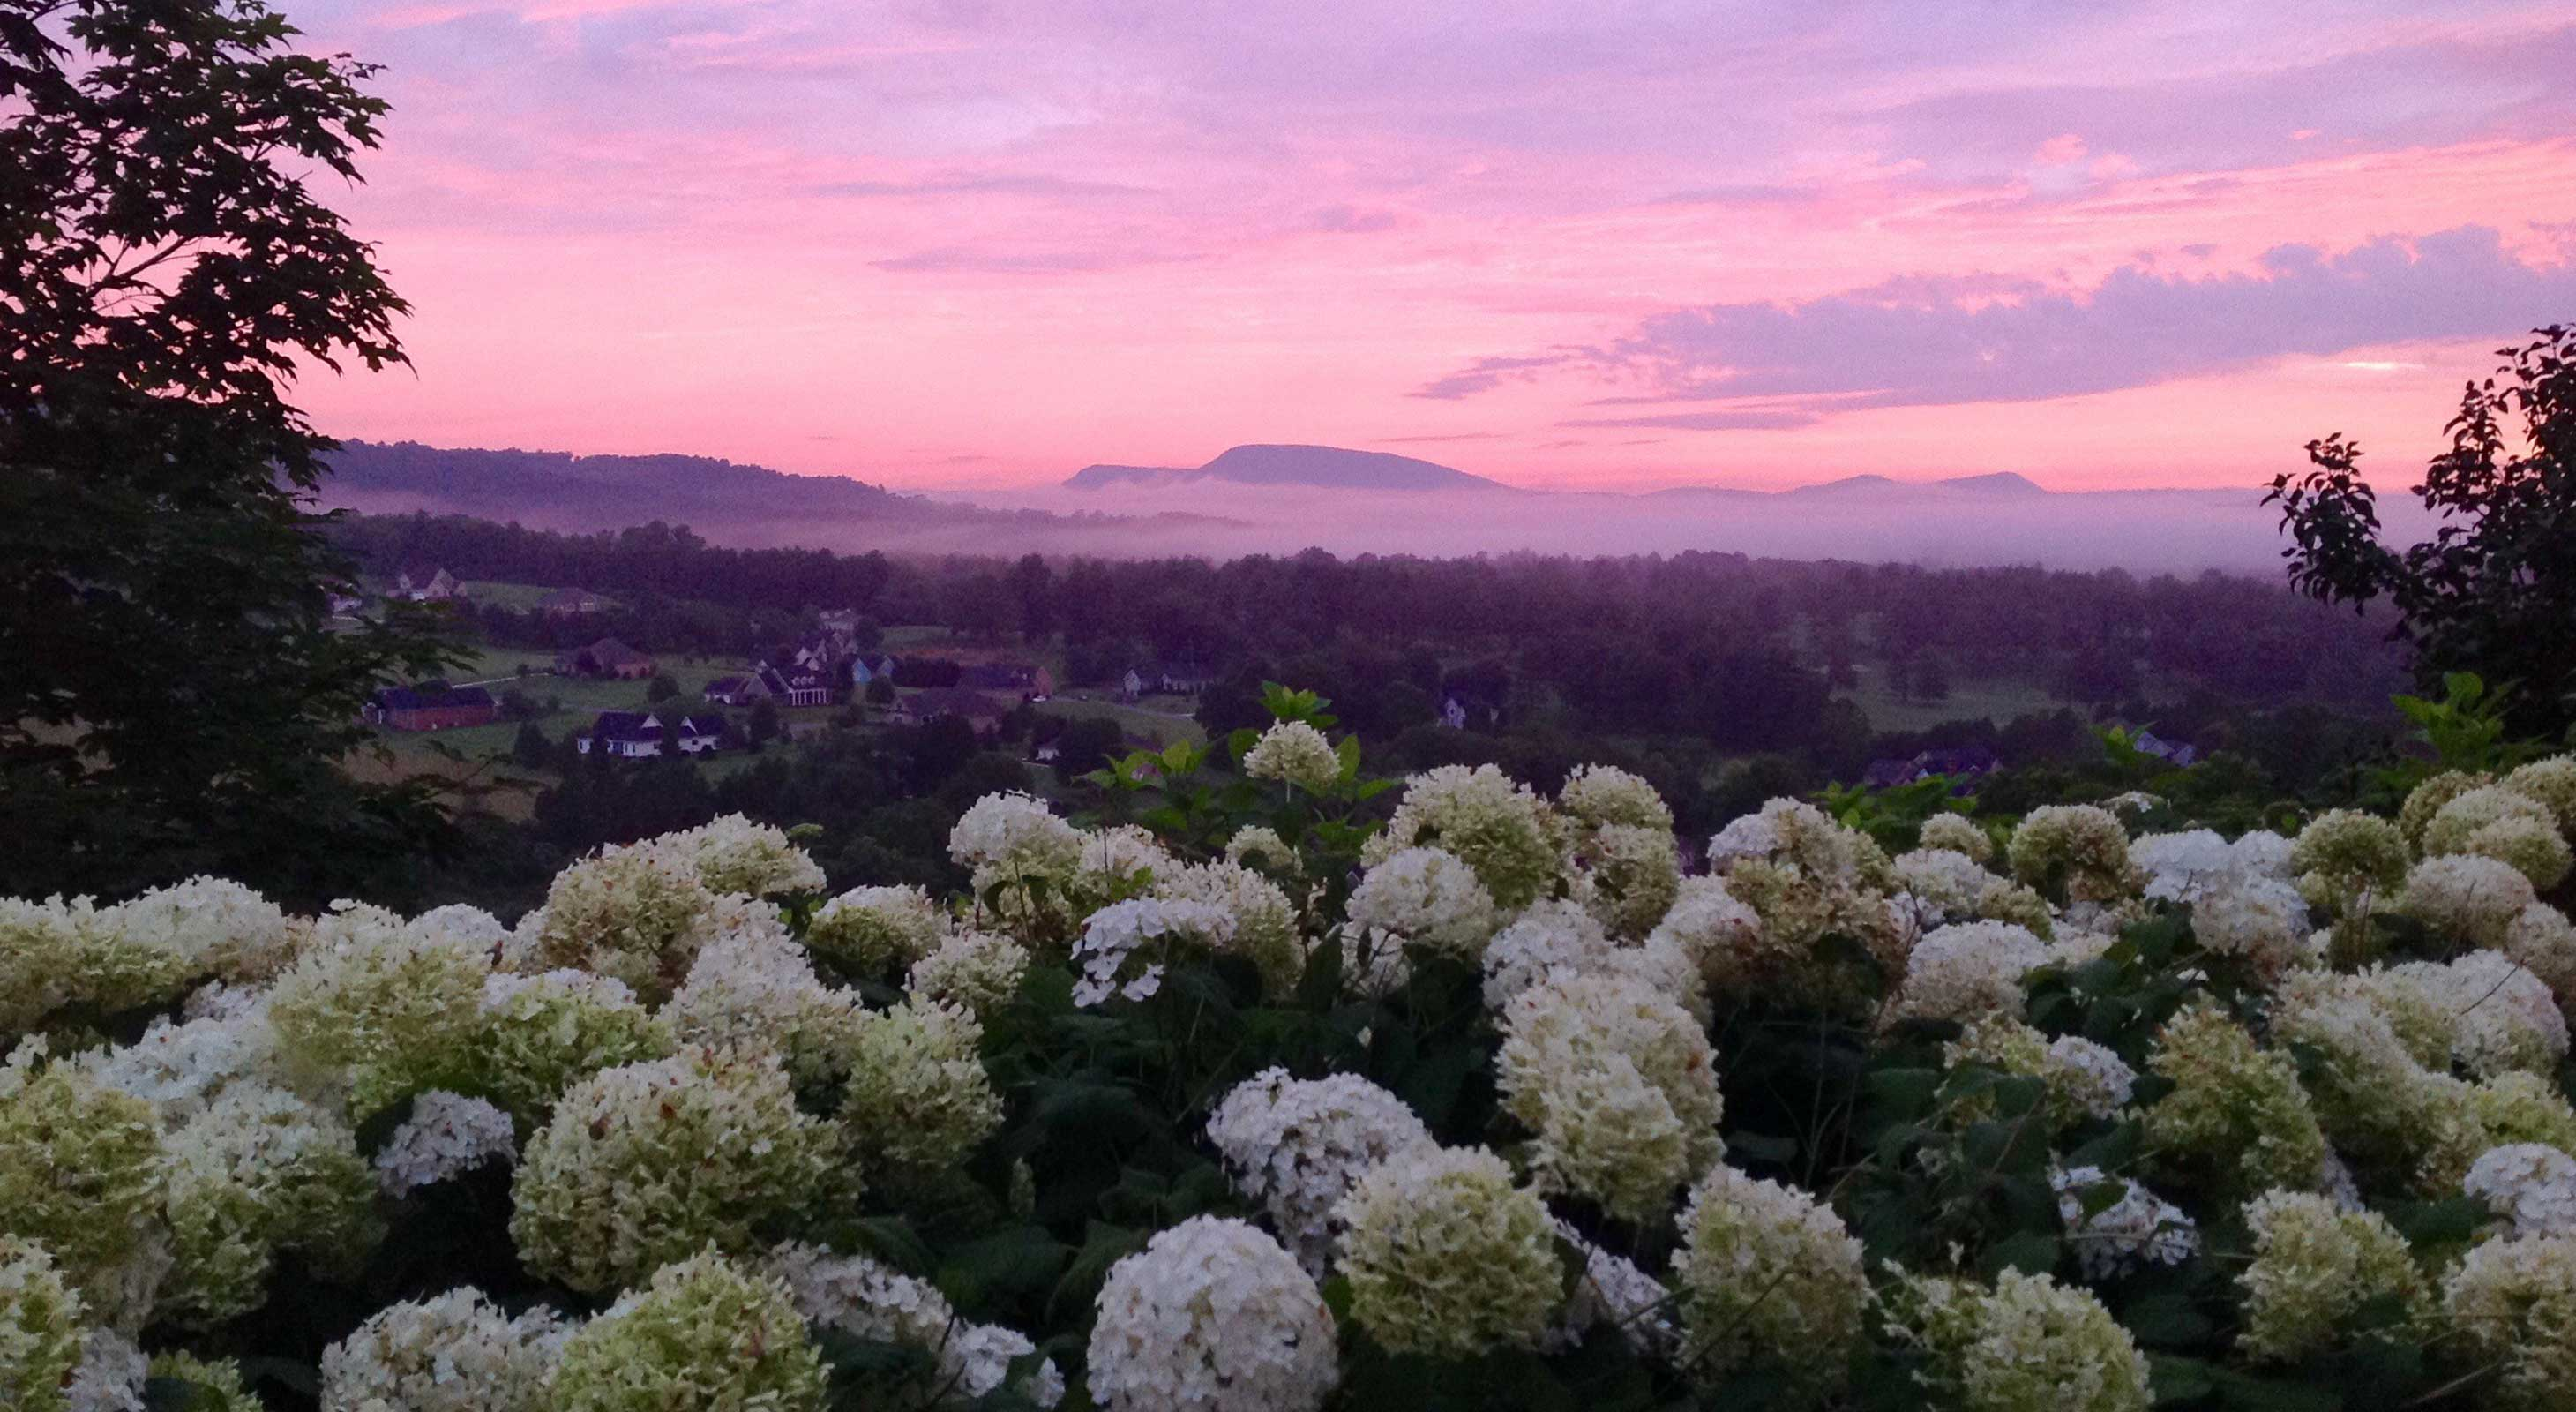 View of Flowers and Mountains at Sunset